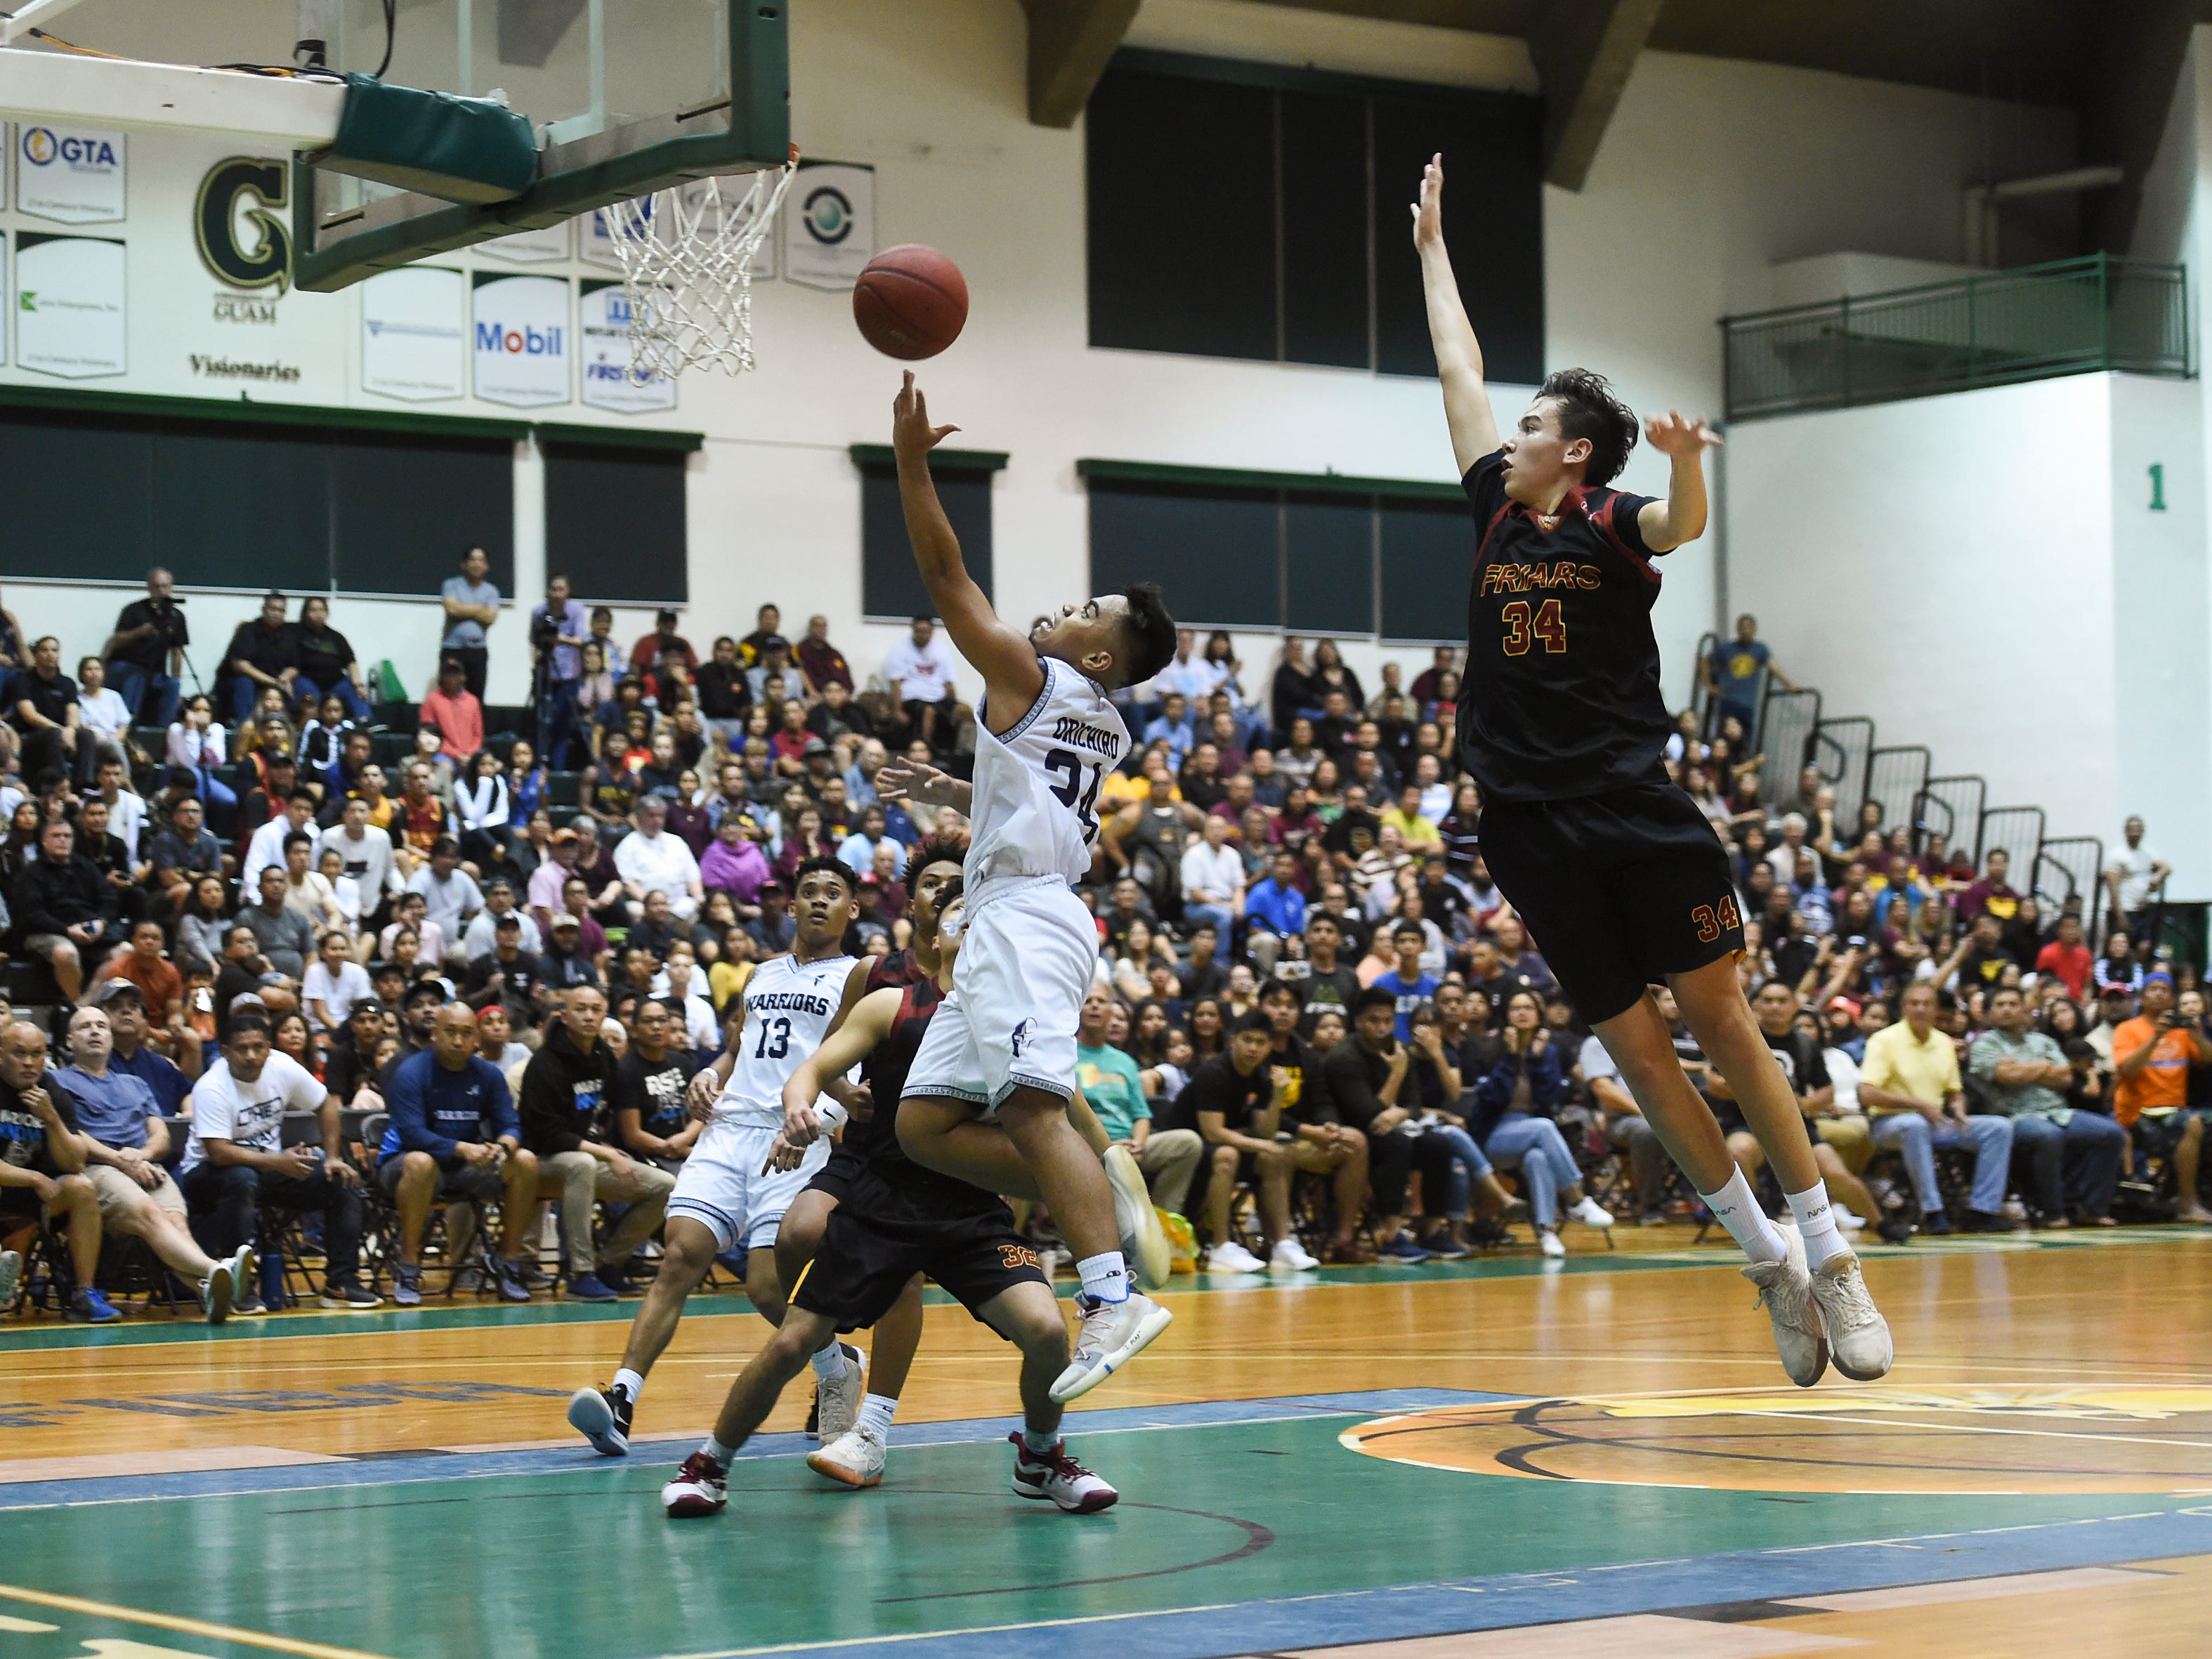 St. Paul Warriors player Thelo Orichiro (24) attempts a layup against the Father Duenas Friars during the IIAAG Boys' Basketball Championship game at the University of Guam Calvo Field House in Mangilao, March 15, 2019.